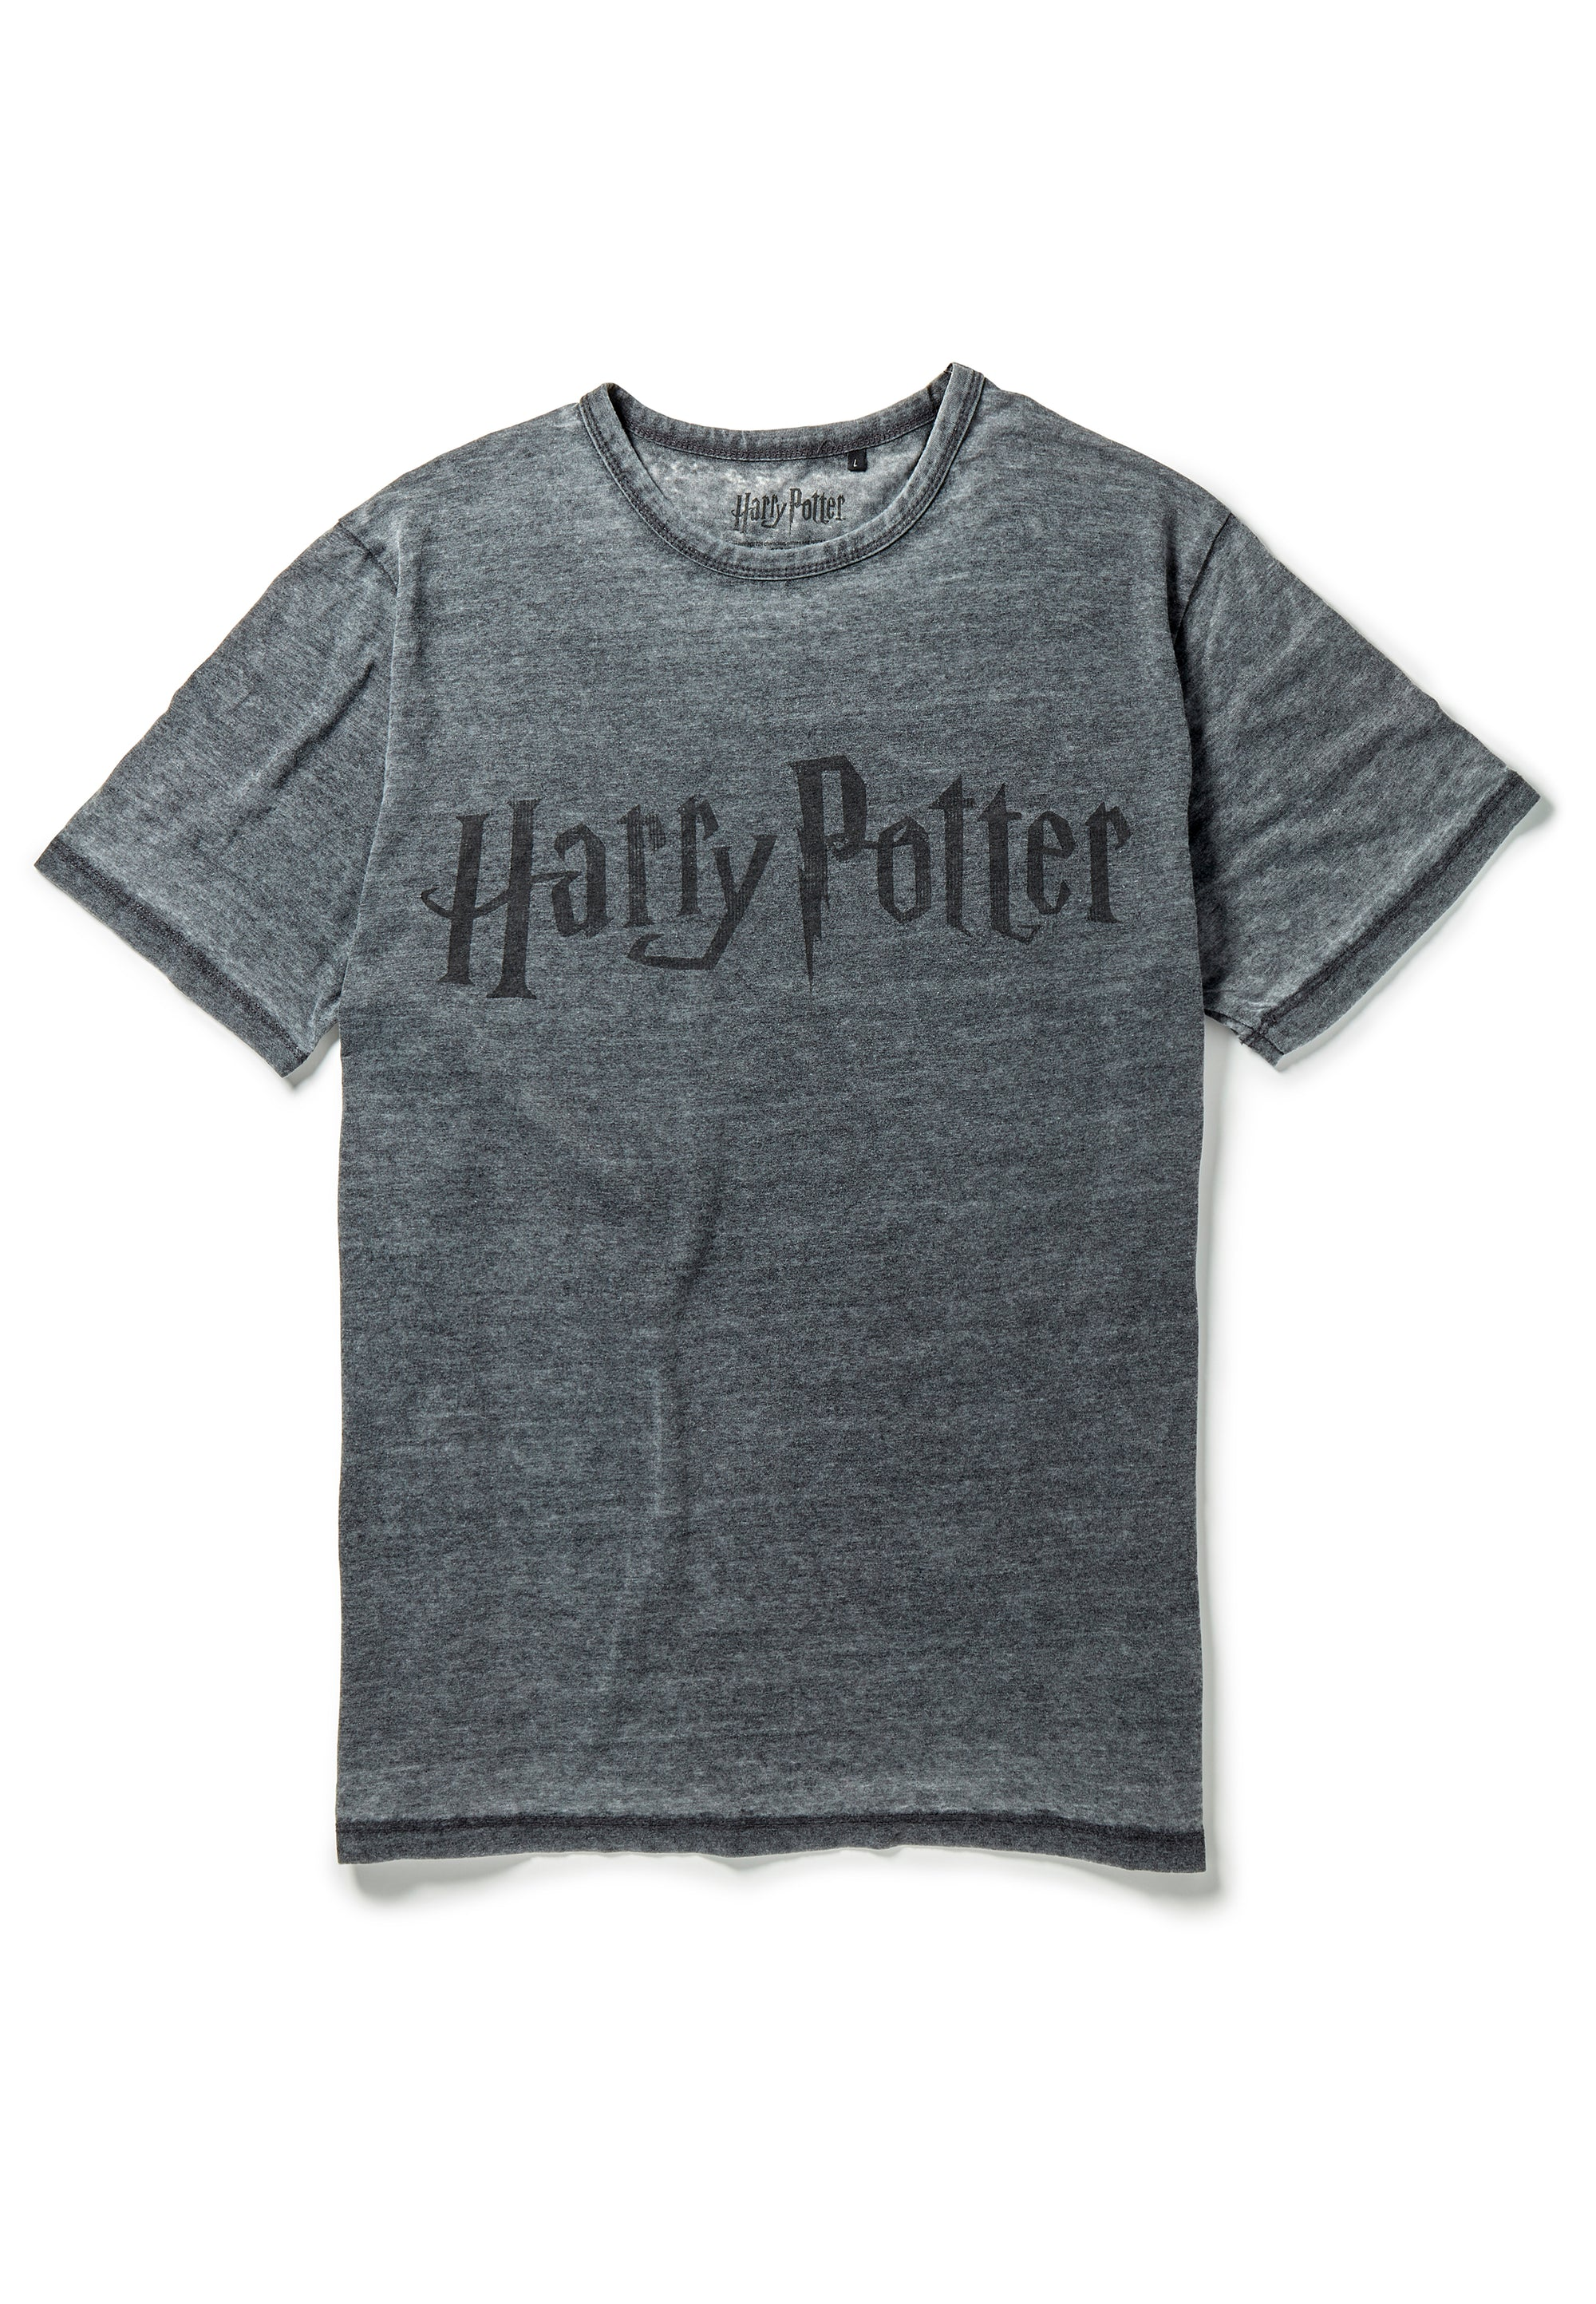 Recovered Harry Potter Classic Logo Charcoal T-Shirt